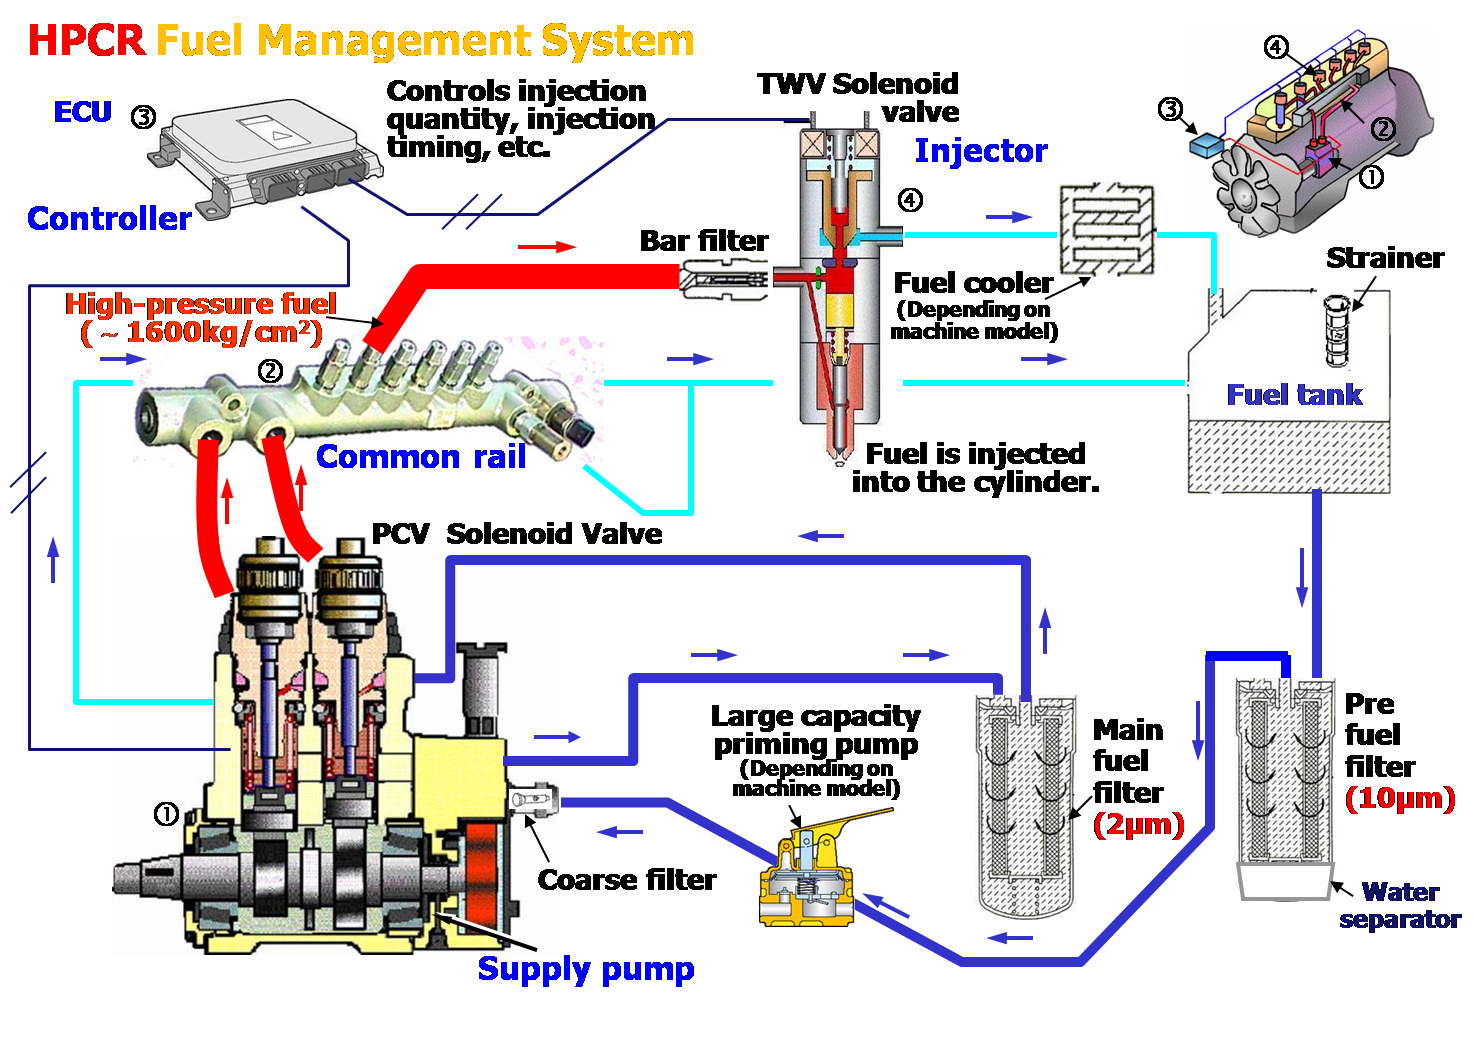 hight resolution of hpcr system cat c15 engine wiring diagram cat 3406 engine wiring diagram c15 acert